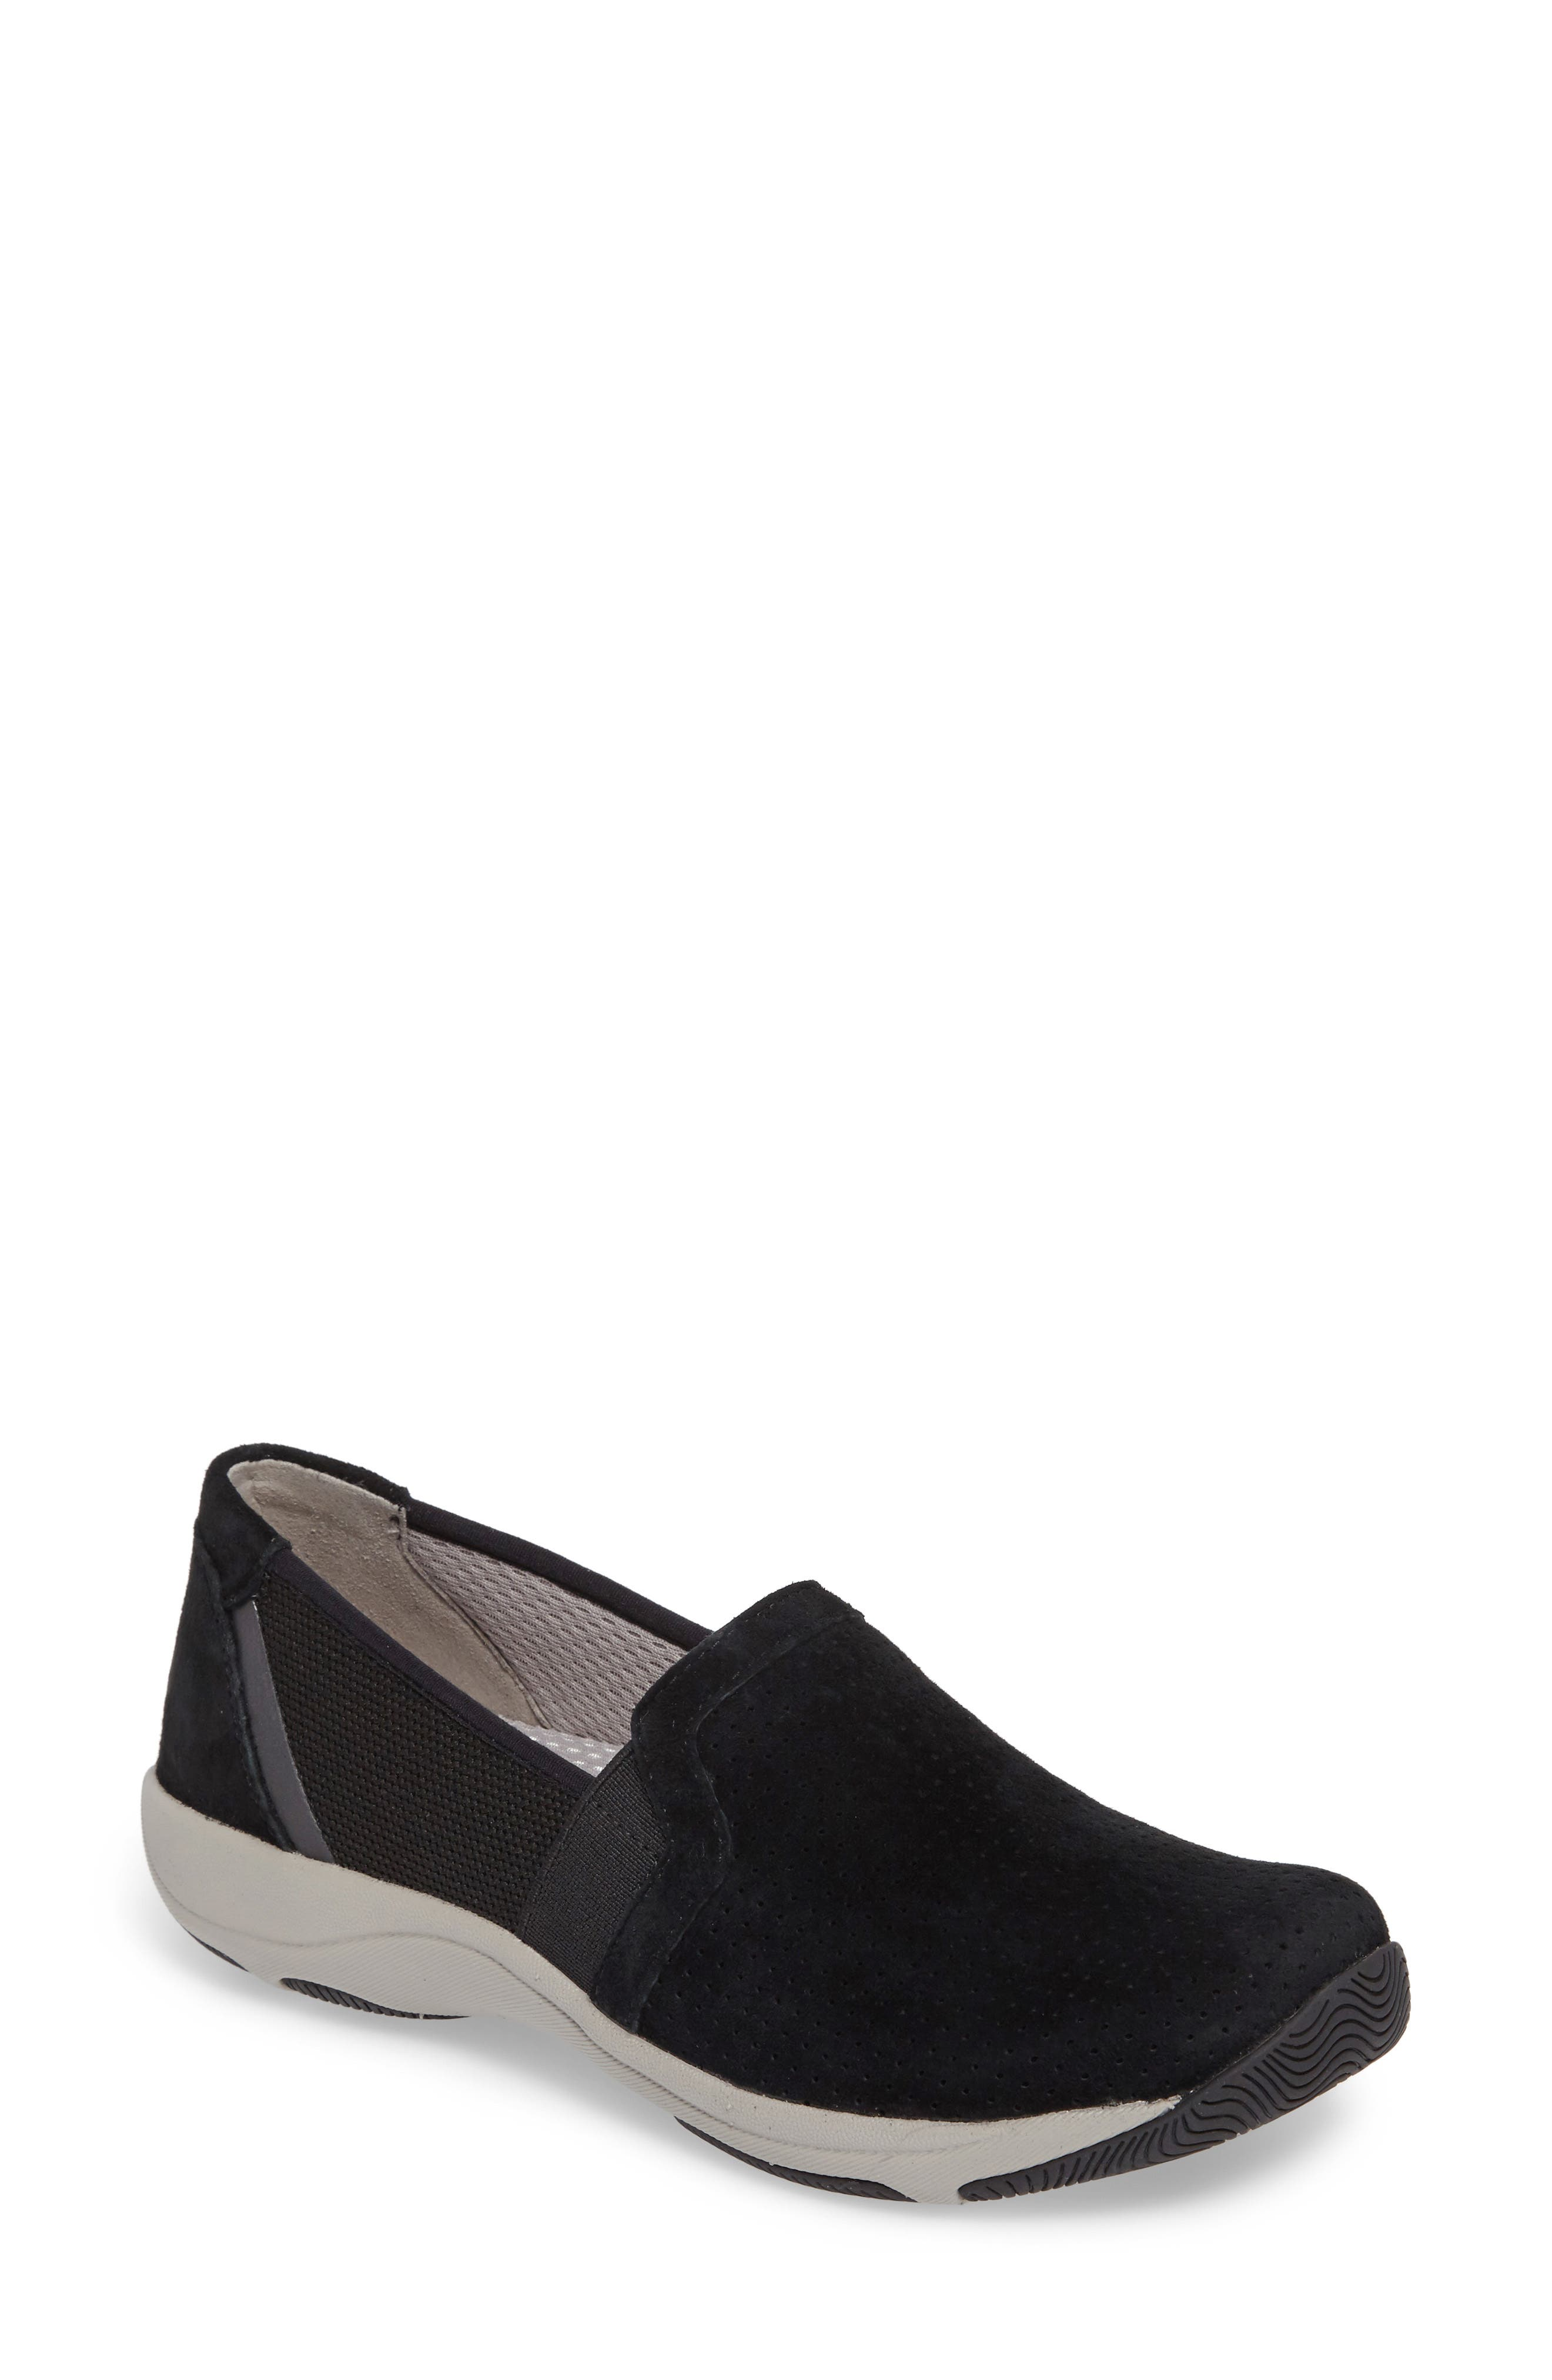 Halifax Collection Halle Slip-On Sneaker,                             Main thumbnail 1, color,